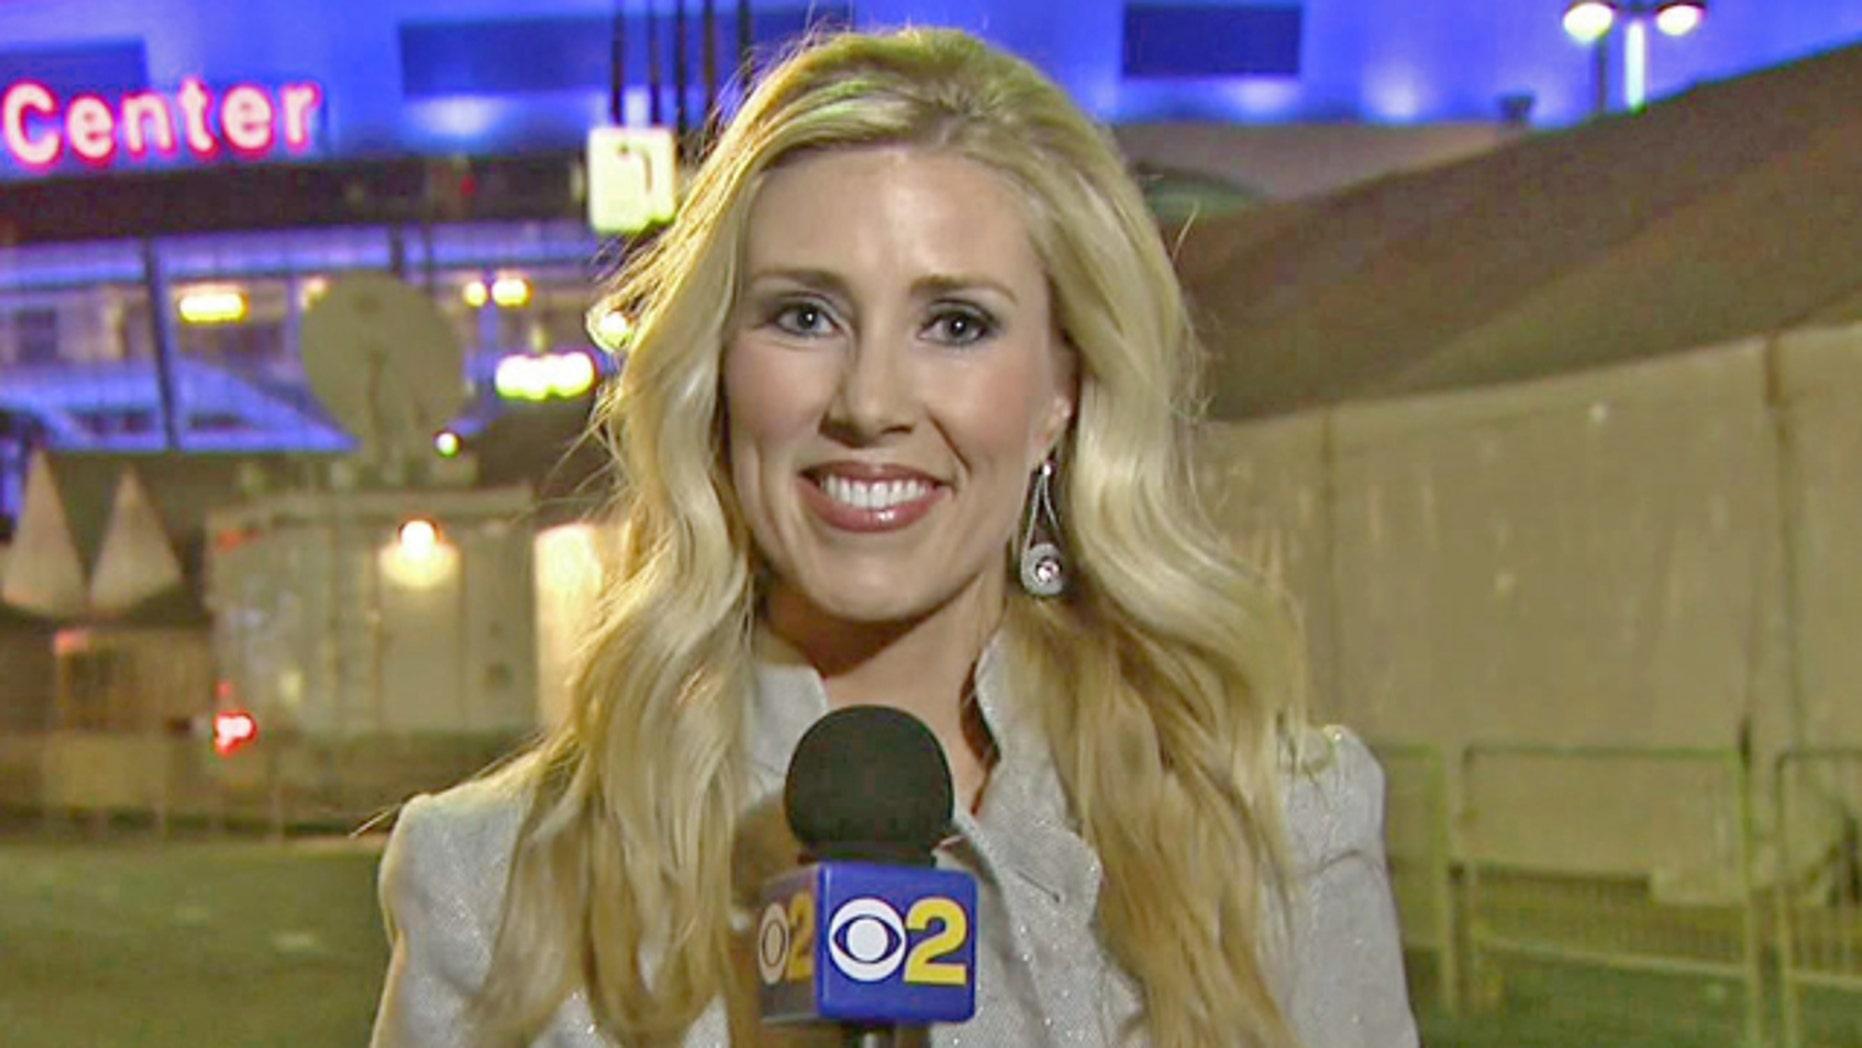 In this Feb. 13 handout file photo provided by KCBS in Los Angeles, veteran TV journalist Serene Branson reports on the Grammy awards show outside the Staples Center in Los Angeles.